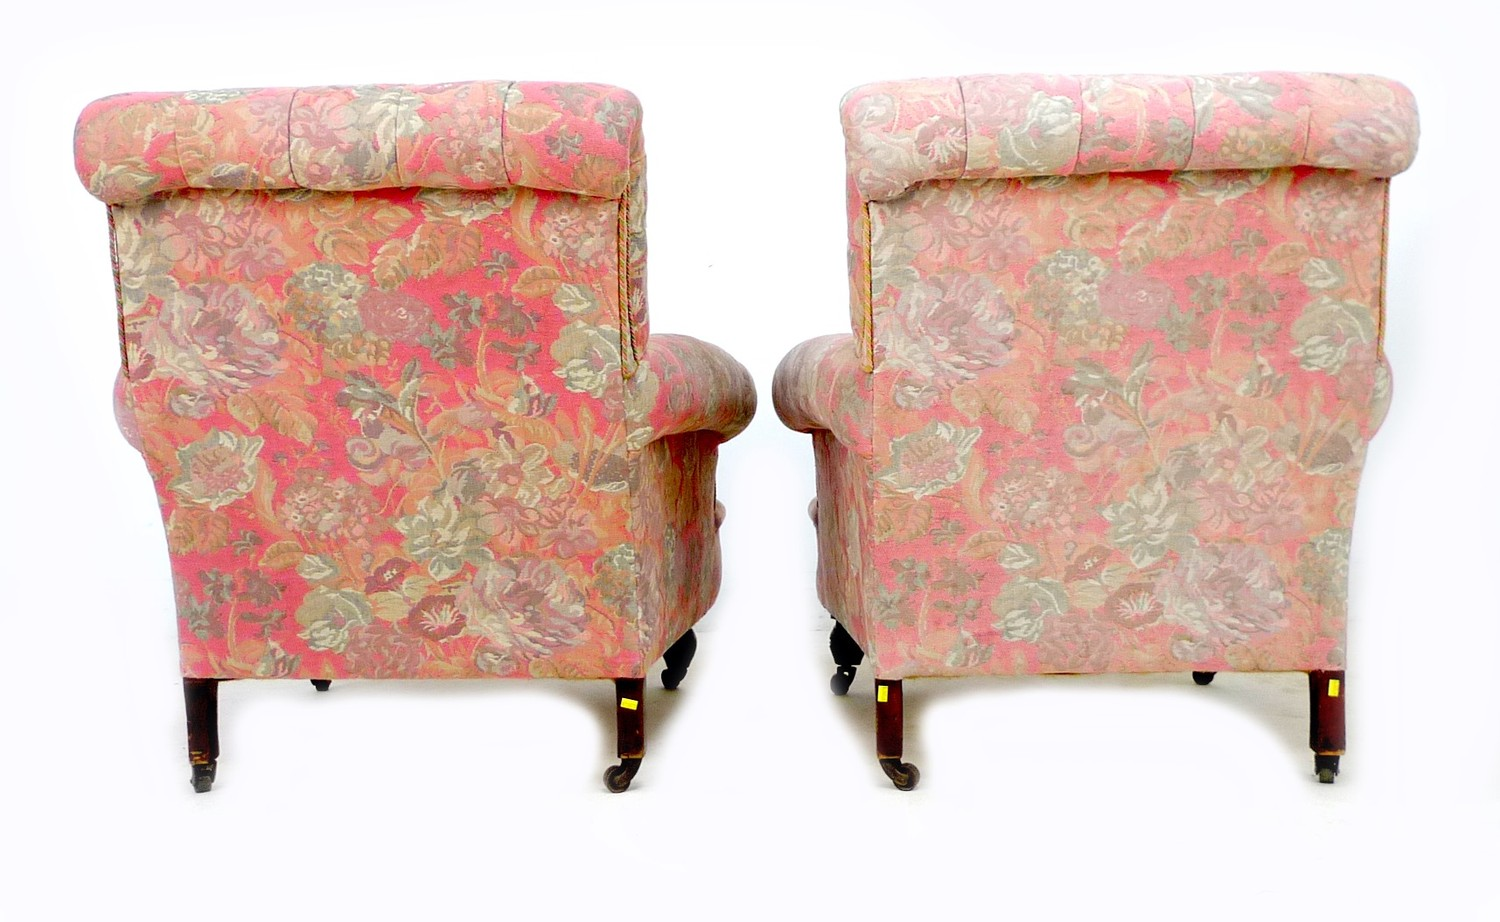 A pair of Victorian easy armchairs, in the style of Howard & Sons, upholstered in pink and grey - Image 3 of 4